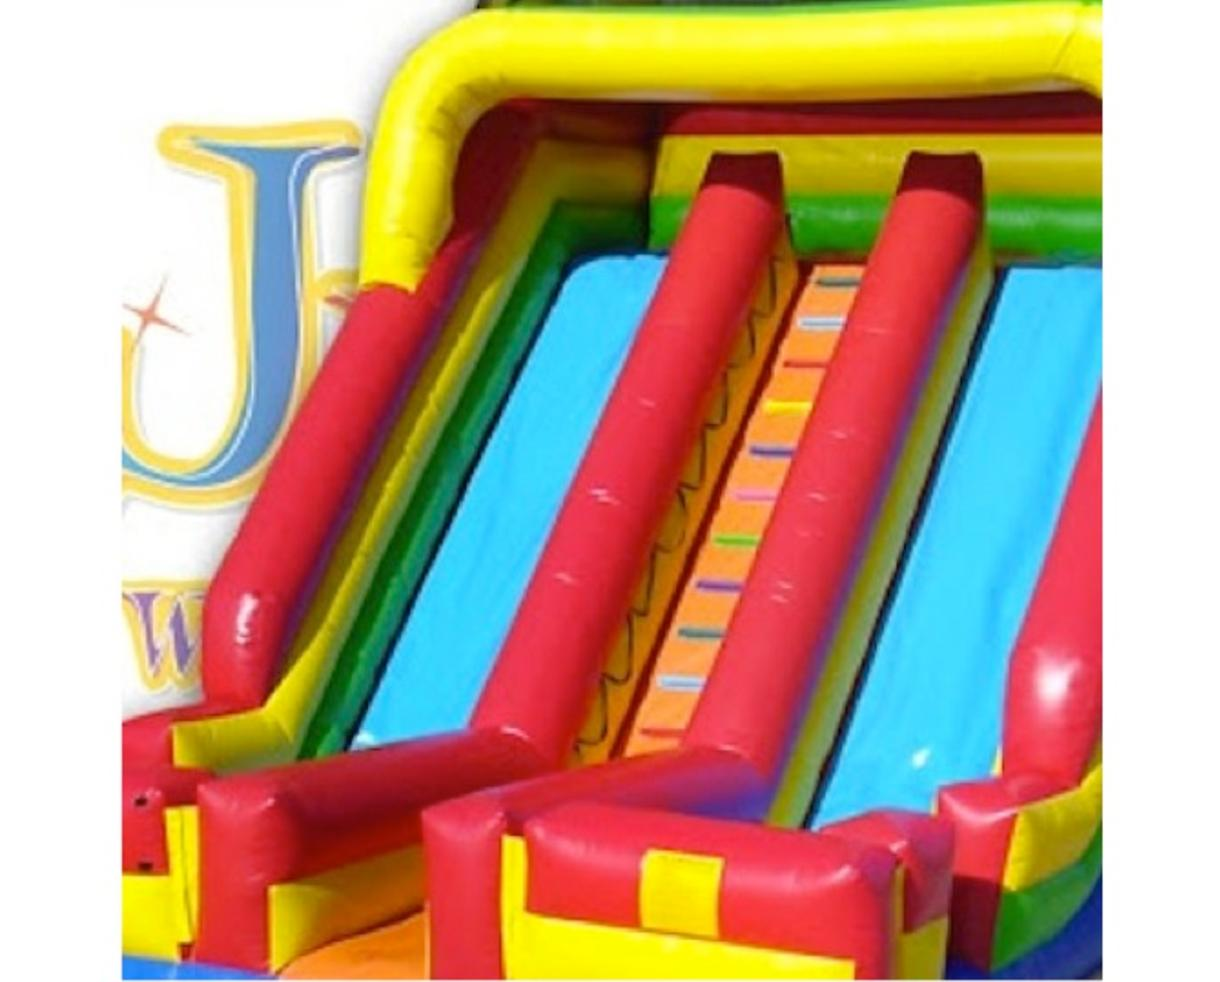 $35 for 15 Two-Hour Passes to That Bounce Place in Reisterstown (Up to $134.25 Value - 74% Savings)